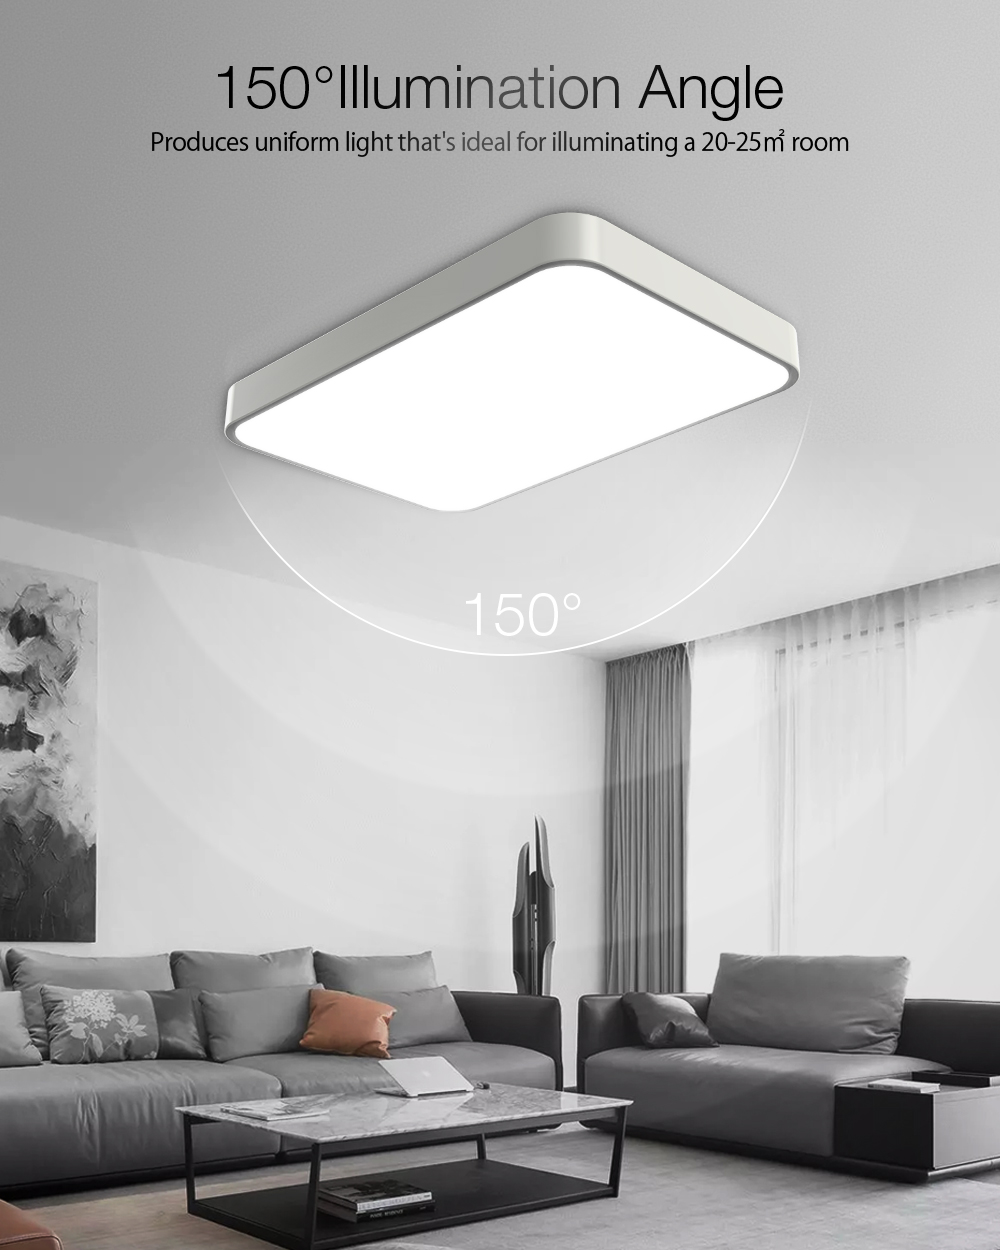 DIGOO DG-MD102 AC185-265V 48W Stepless Dimming Color Temperature Adjustable Remote Control Ultra-thin Ceiling Light